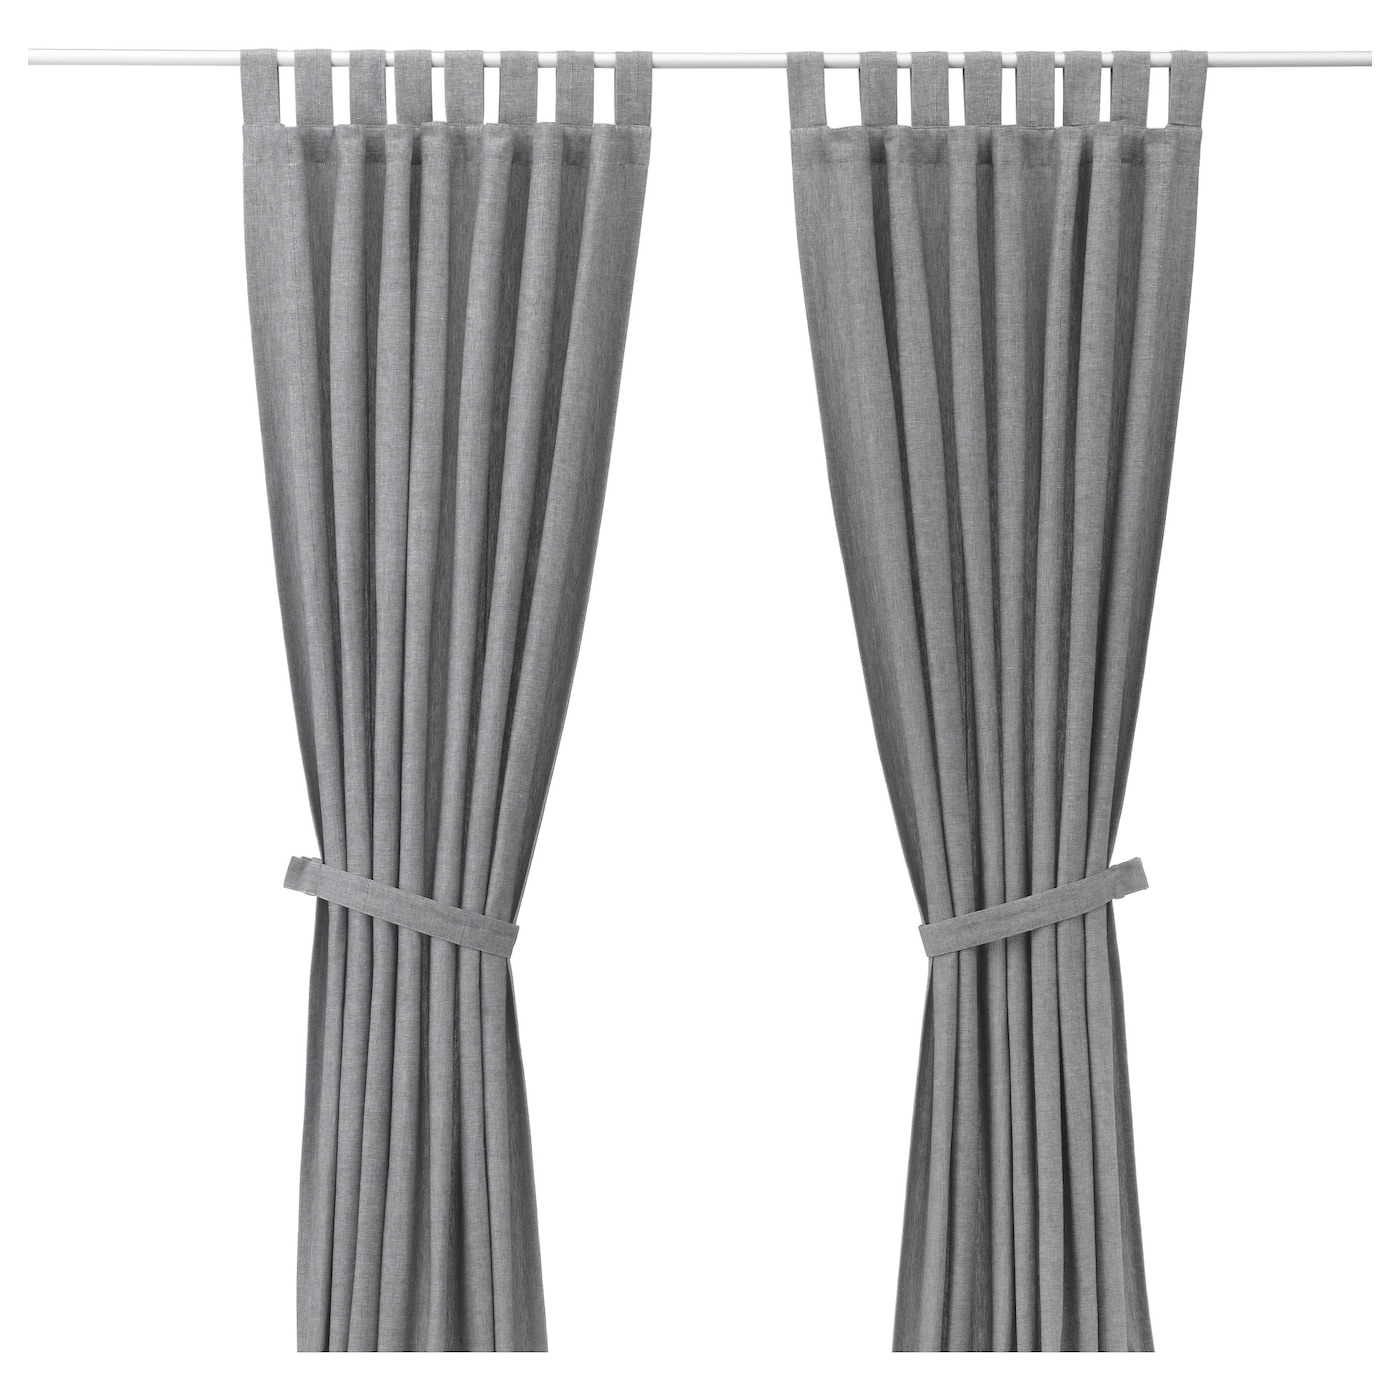 Curtains Lenda Curtains With Tie Backs 1 Pair Grey 140x250 Cm Ikea